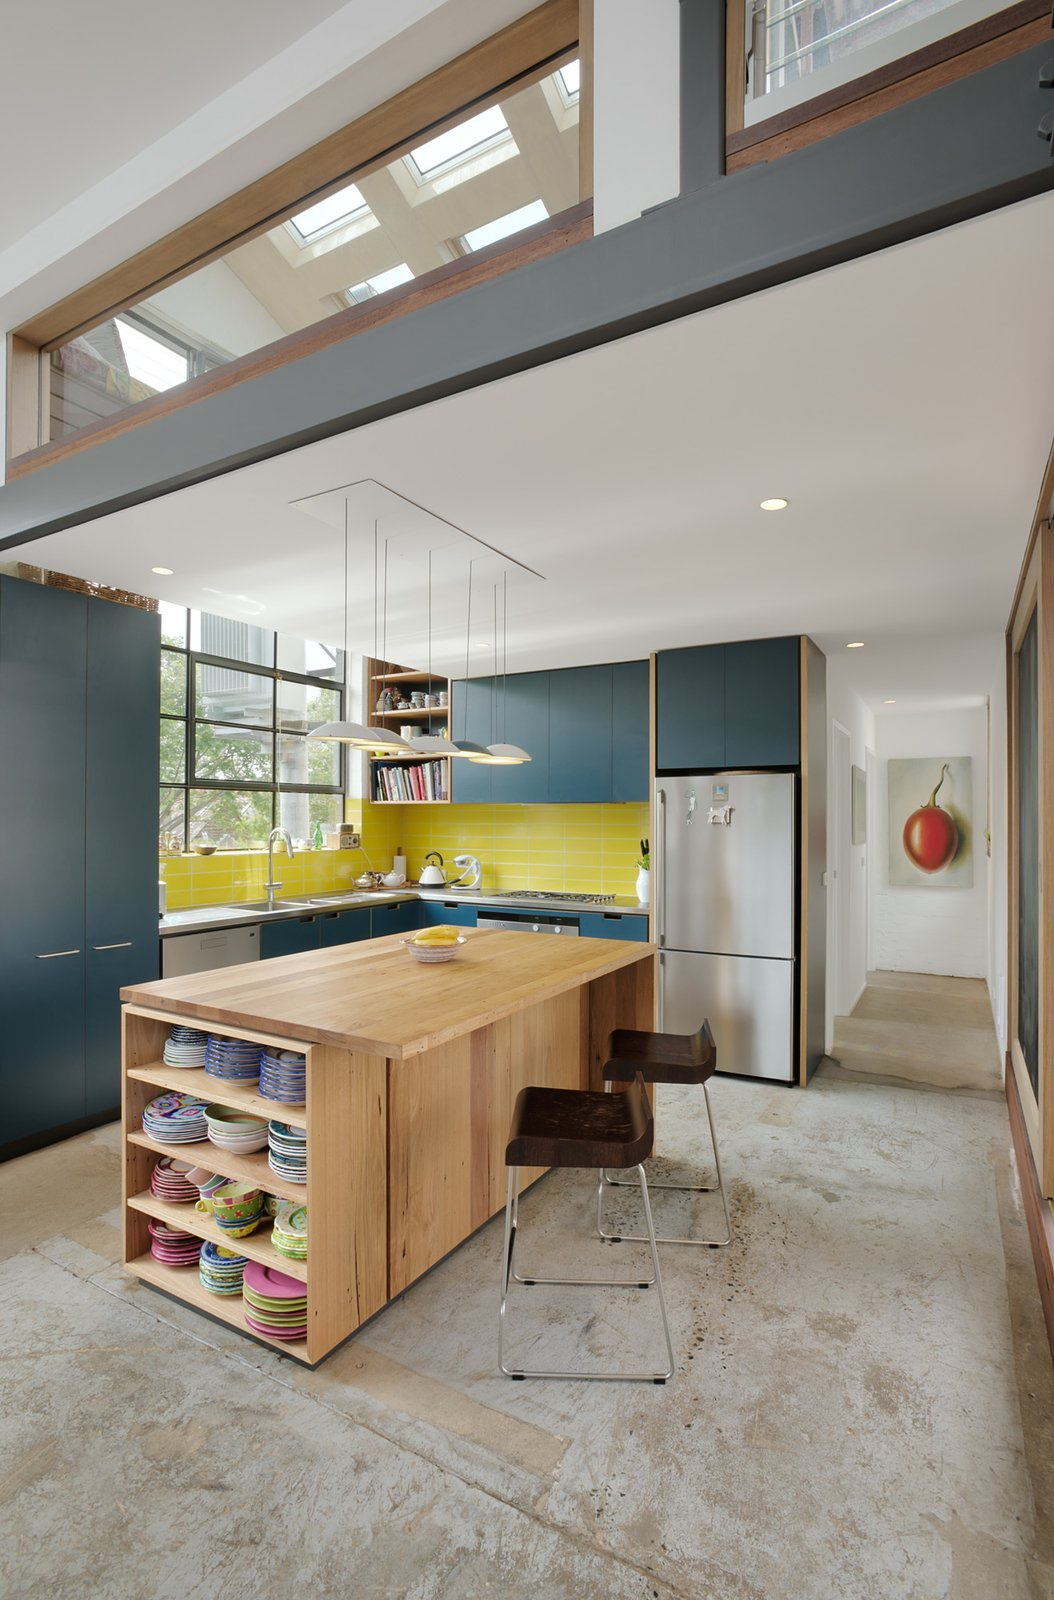 Kitchen, Colorful, Concrete, Subway Tile, Pendant, Recessed, Ceiling, Refrigerator, Dishwasher, Wall Oven, Range, Drop In, and Wood A family's dream of living in a converted warehouse becomes a reality when Zen Architects successfully transforms a leaky warehouse from the 1960s into a bright and airy family home—without compromising on comfort or energy efficiency. Bright yellow subway tiles complement dark teal cabinets and colorful dishware.  Best Kitchen Recessed Pendant Wall Oven Wood Subway Tile Photos from A 1960s Melbourne Warehouse Is Upcycled and Transformed Into an Energy-Efficient Family Home